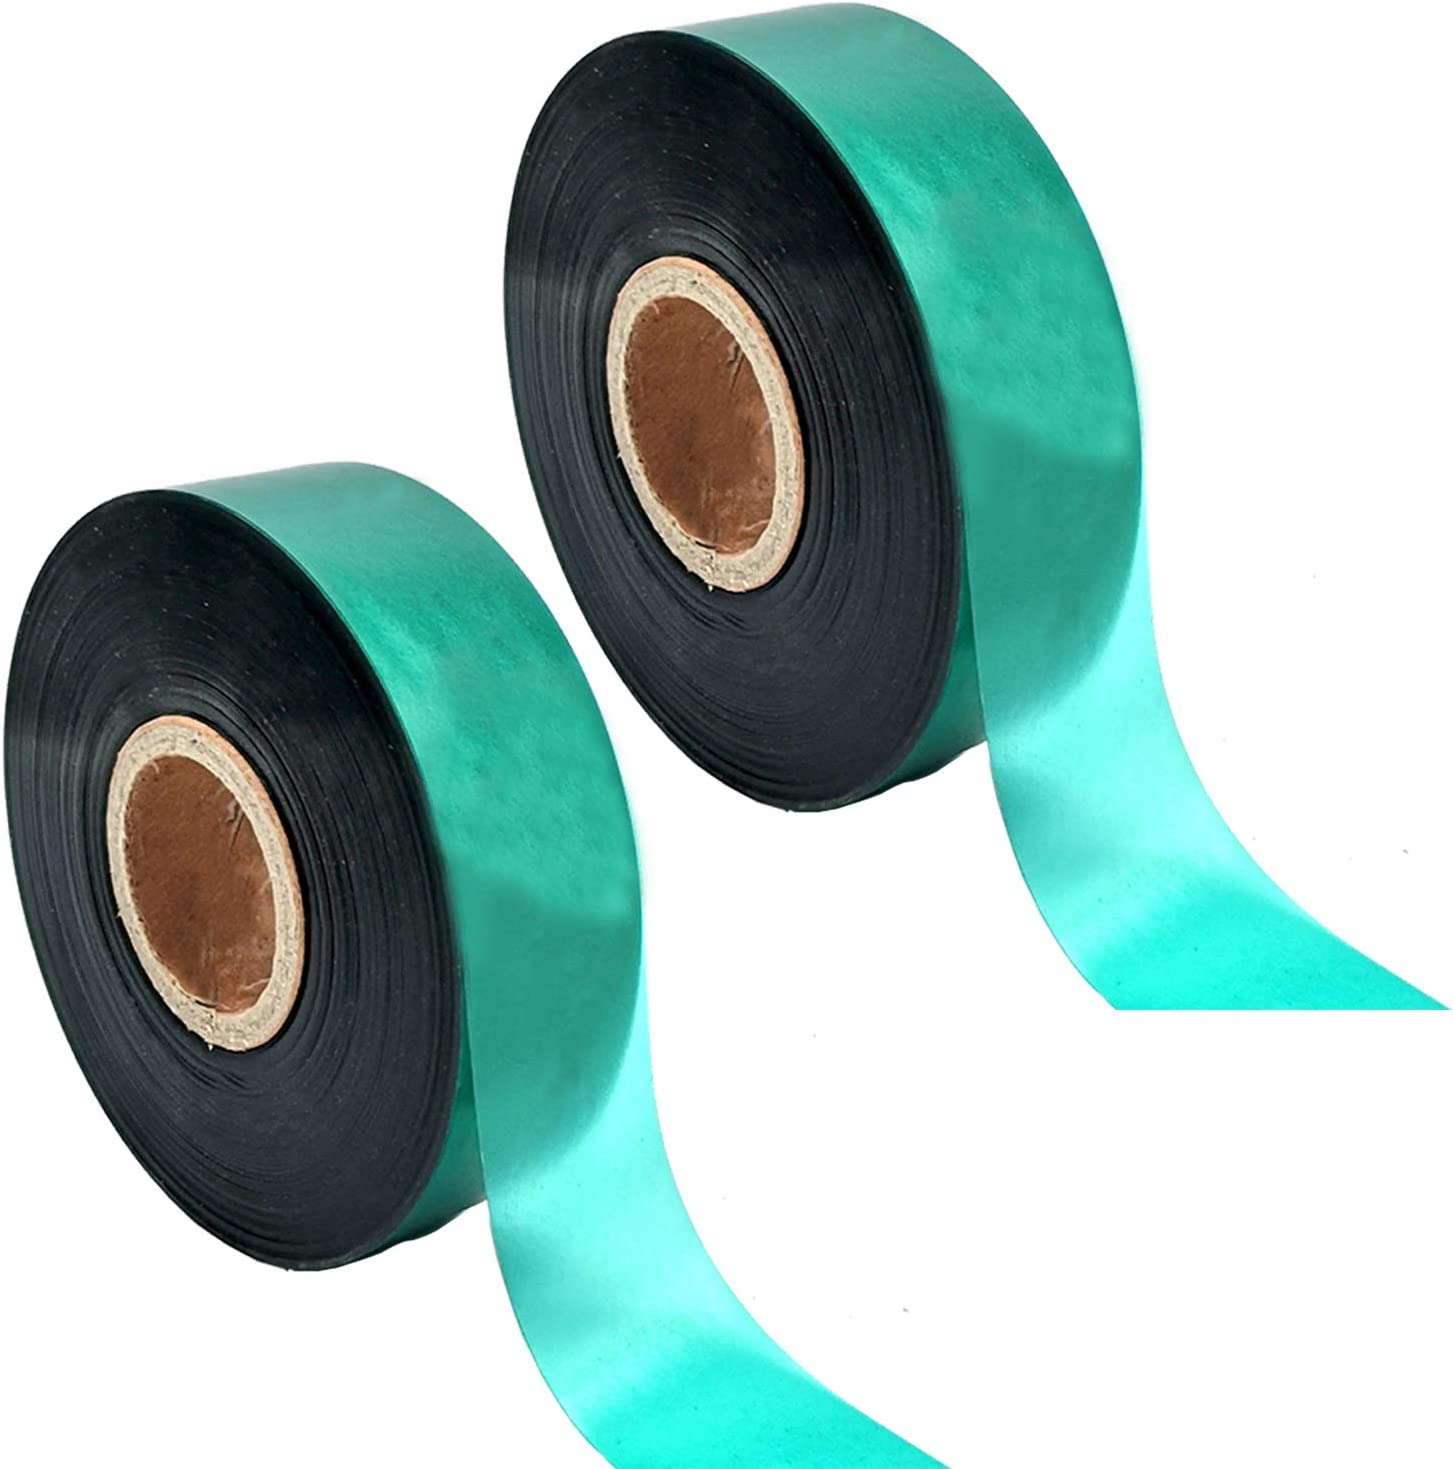 Medoore 2 Rolls Stretch Tie Tape Garden Tie Tape Thick Plant Ribbon Garden Green Vinyl Stake for Indoor Outdoor Patio Plant Use, 1 Inch Wide by 150 Feet Long